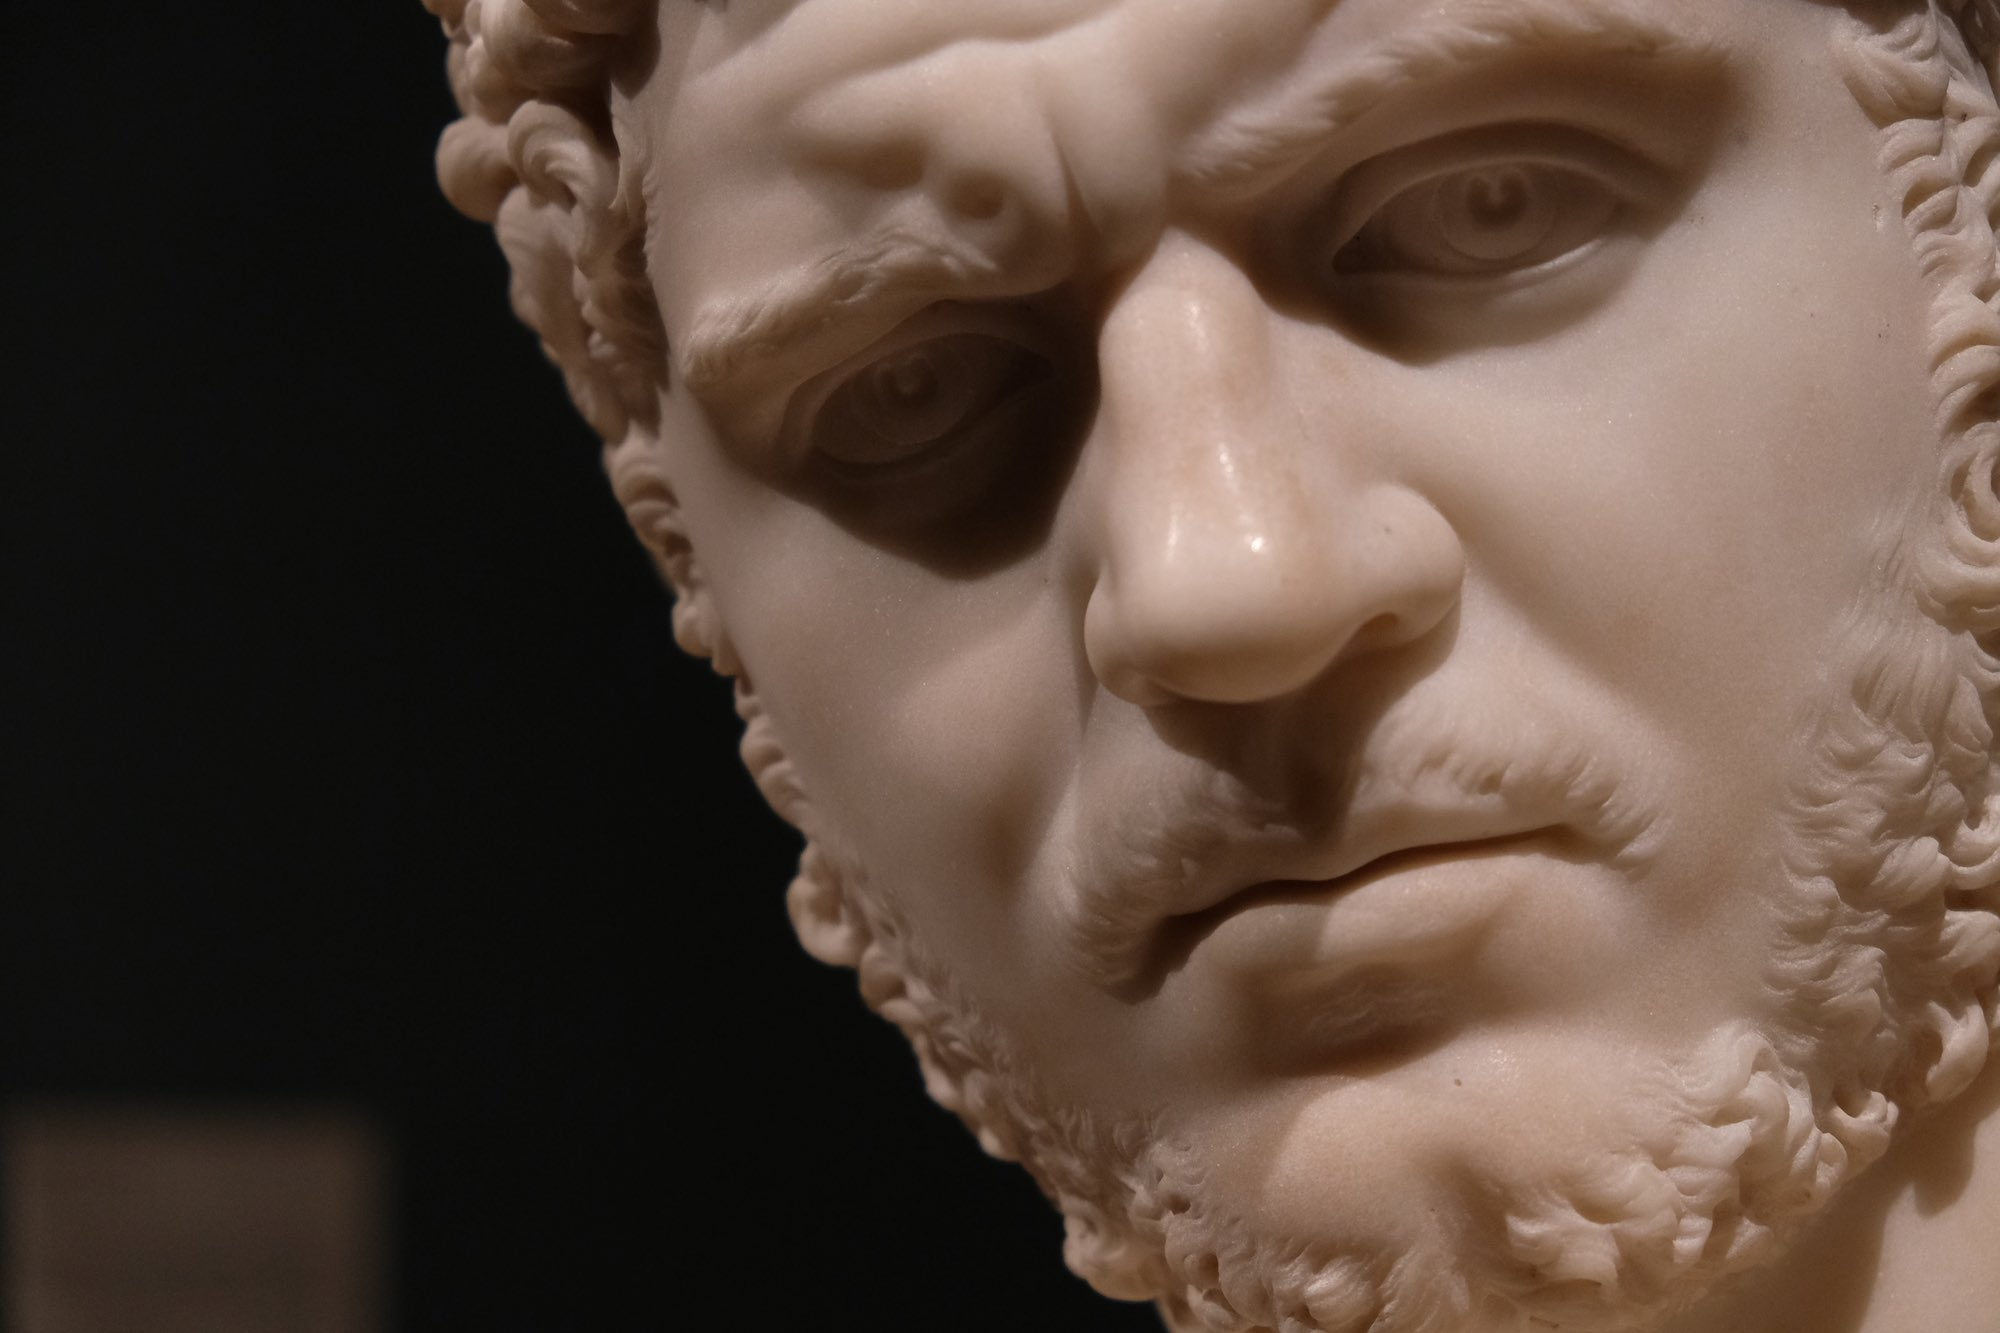 Day 109 - An ancient roman lives on in the Saint Louis Art Museum.